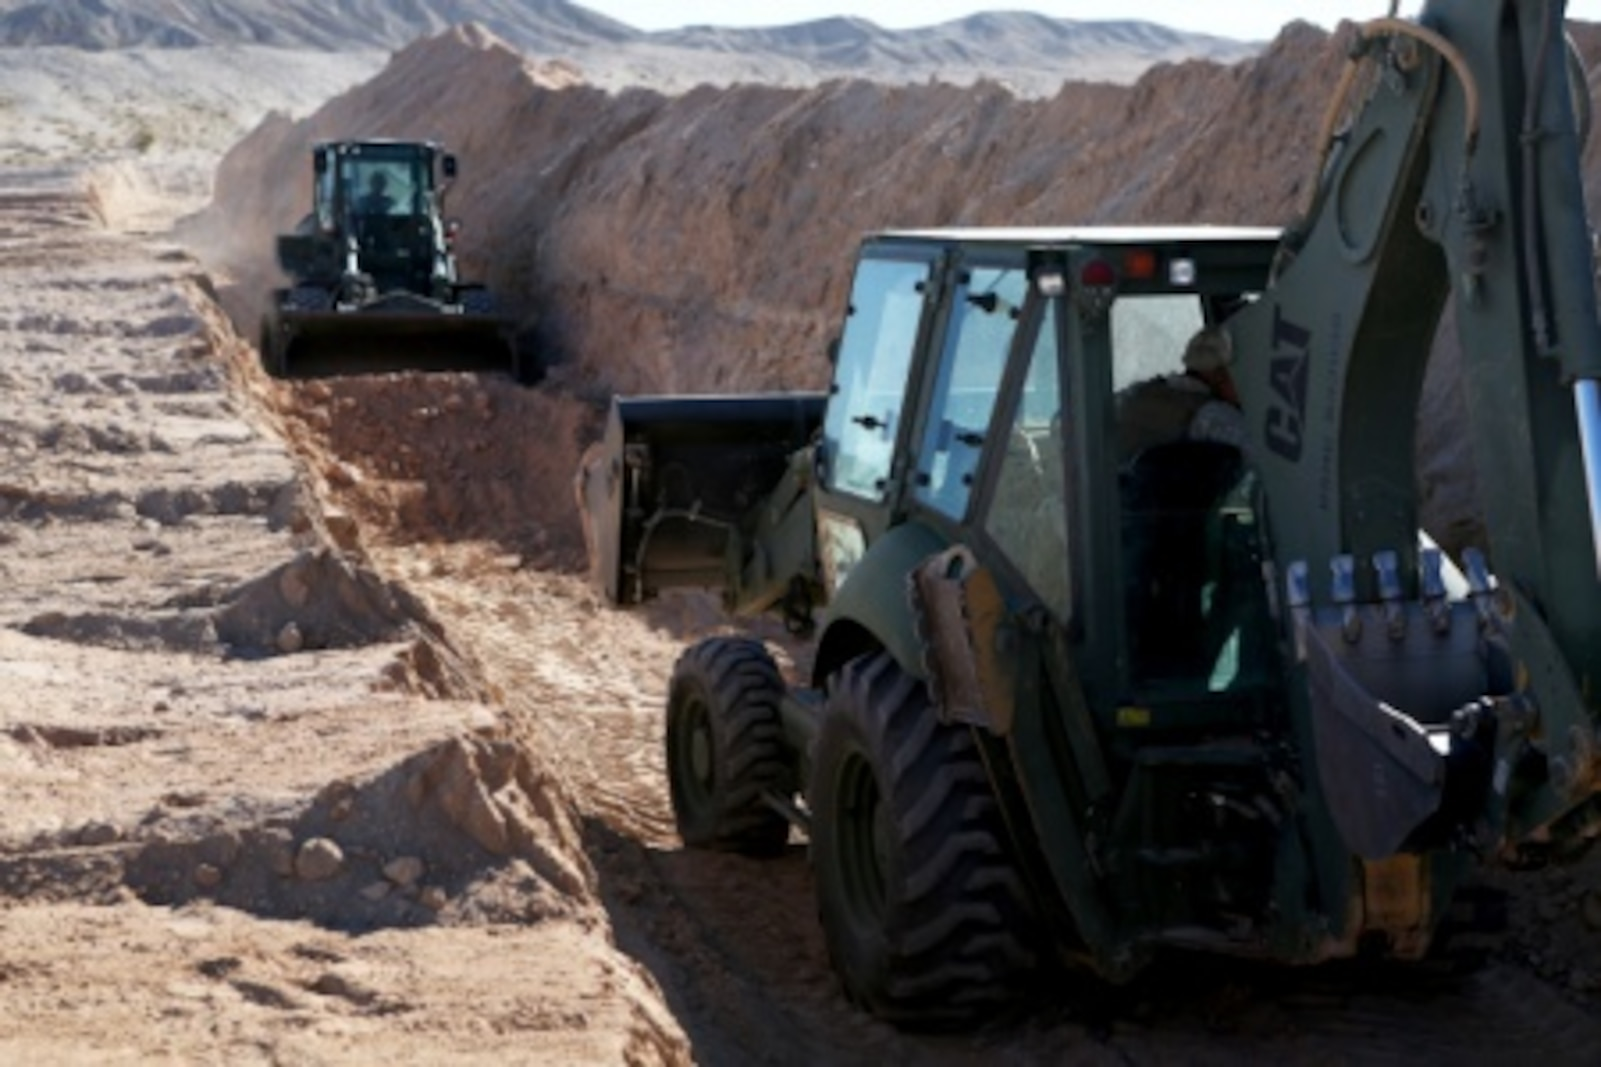 Heavy equipment operators with Headquarters and Support Company, Combat Logistics Battalion 5, 1st Marine Logistics Group, uses 420E Back Hoe create a 200 meter long defensive tank trench aboard Marine Corps Air Ground Combat Center Twentynine Palms, Calif., Feb. 8, 2016. Marines and Sailors with CLB-5 are participating in Integrated Training Exercise 2-16 in order to prepare their Marines for an upcoming deployment with Special Purpose Marine Air Ground Task Force – Crisis Response – Central Command, as well as increase the proficiency and capabilities of their unit as a whole.